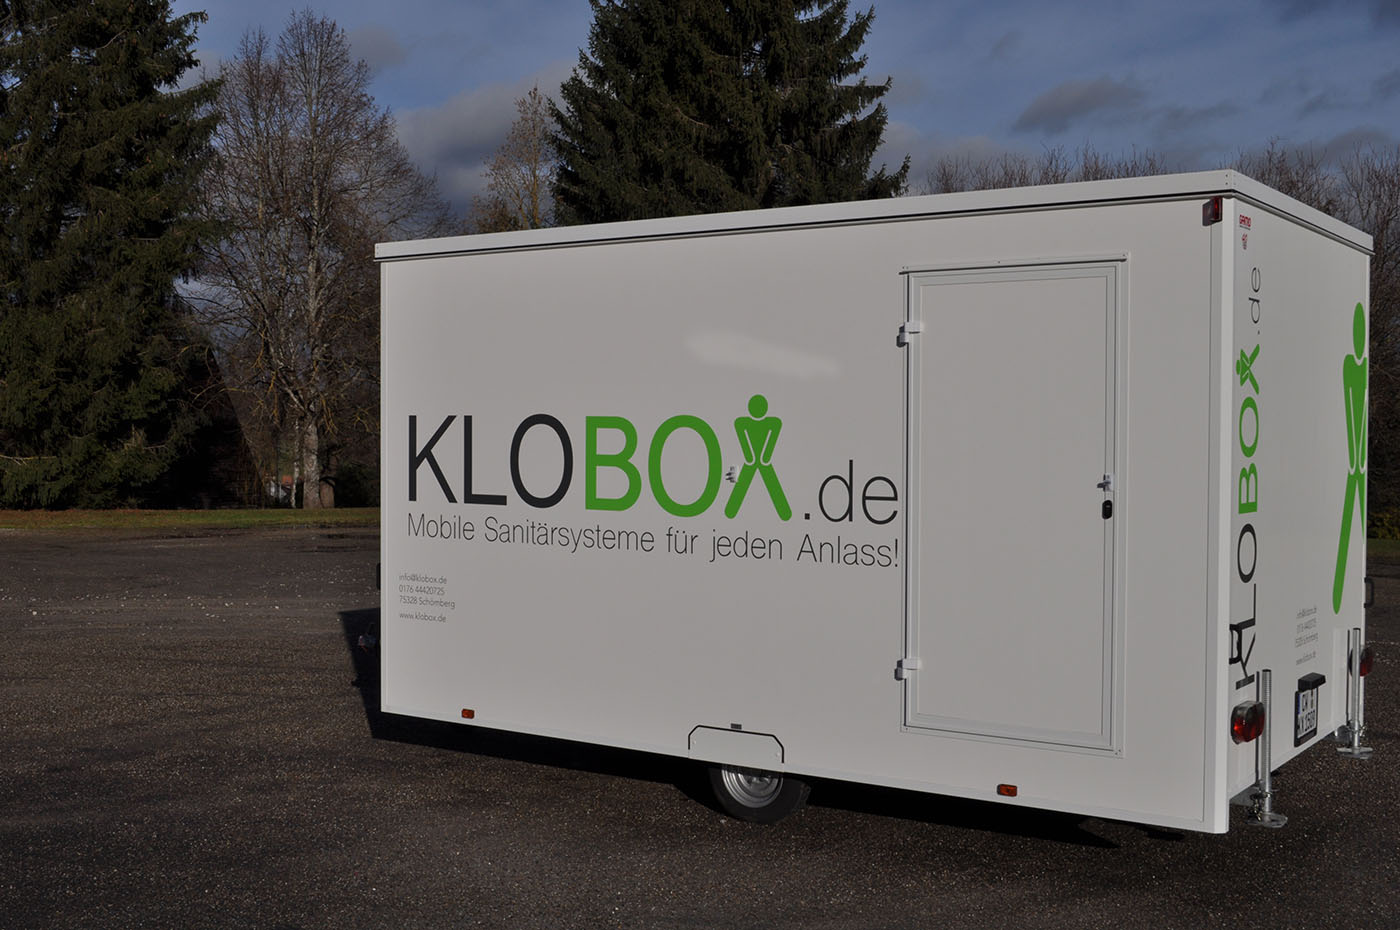 Toilettenwagen - klobox.de #07